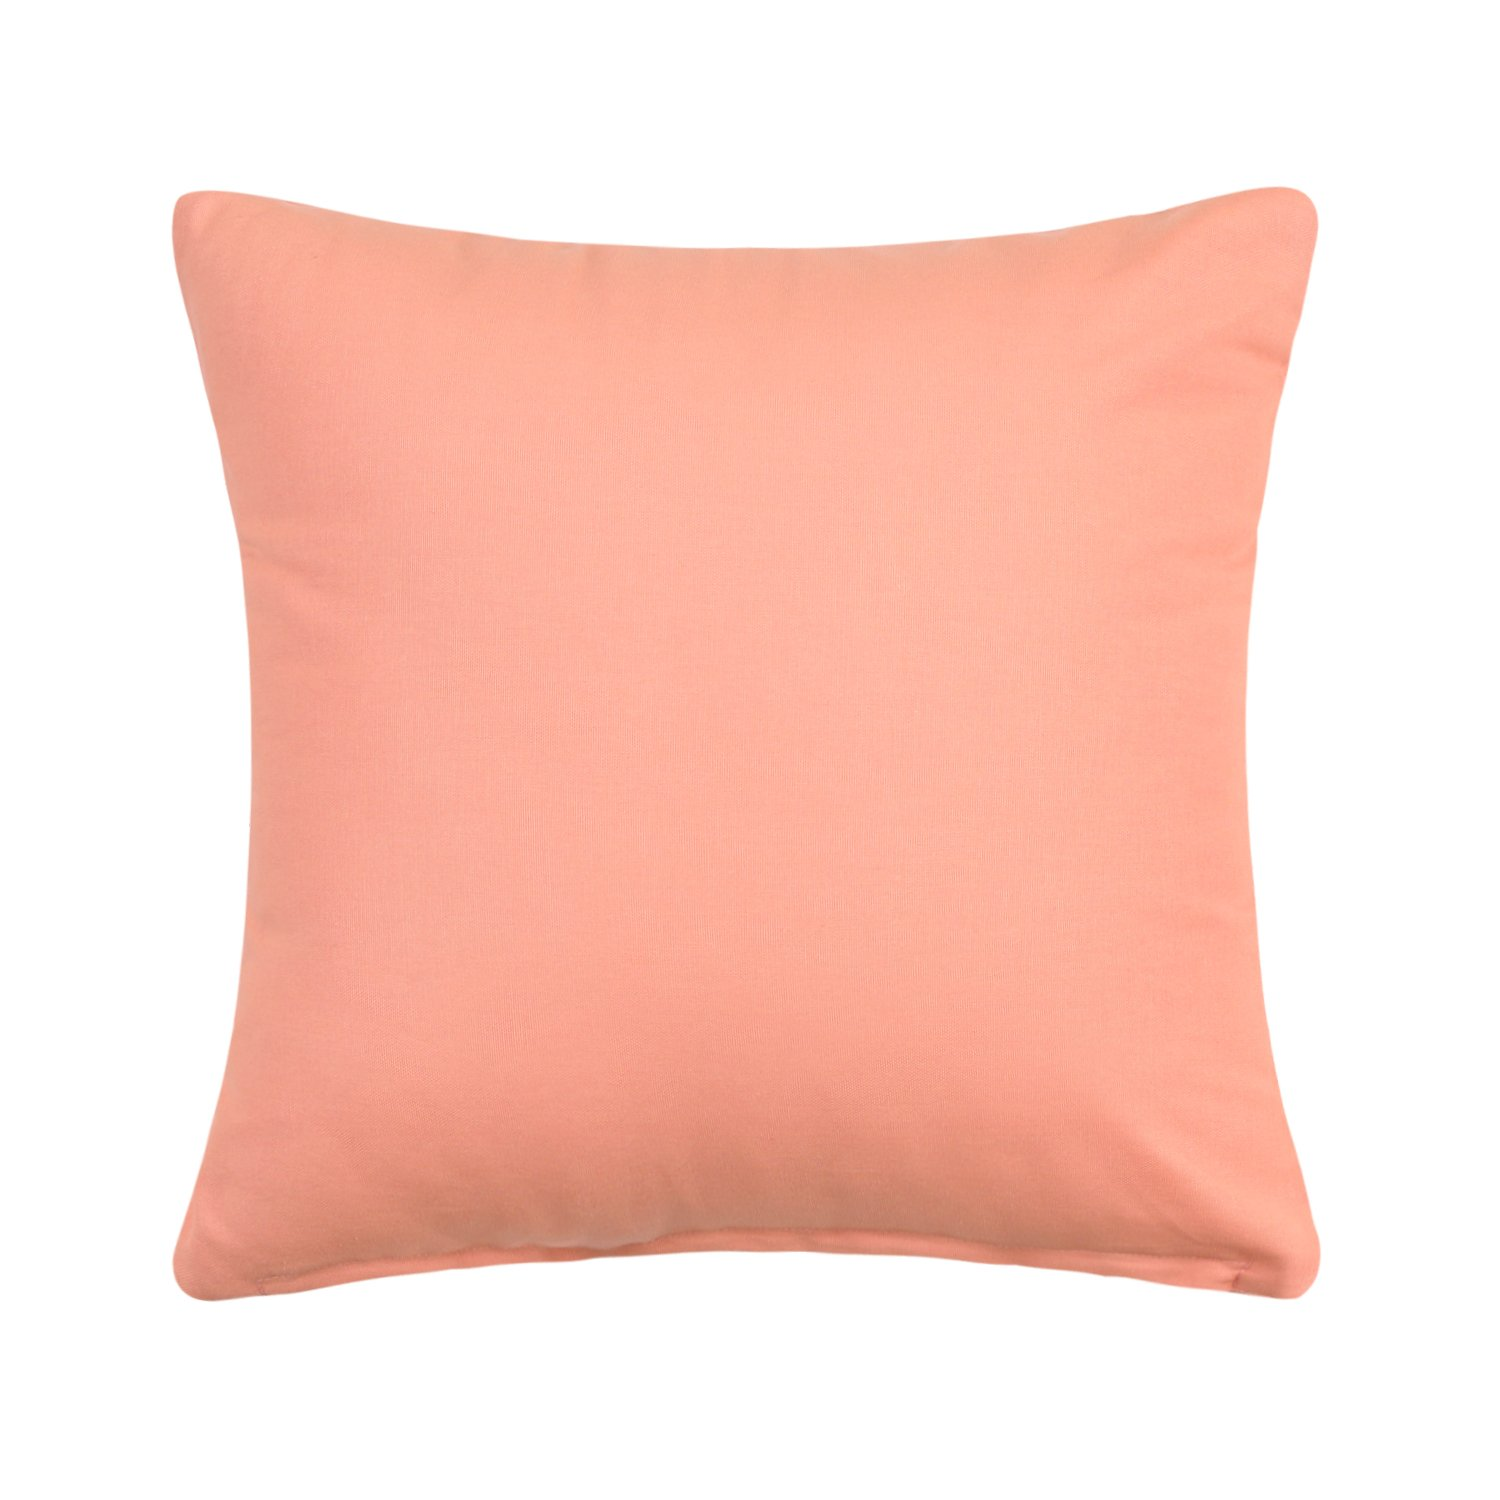 "20"" X 20"" Solid Apricot / Pale Peach Accent Throw Pillow Cover"